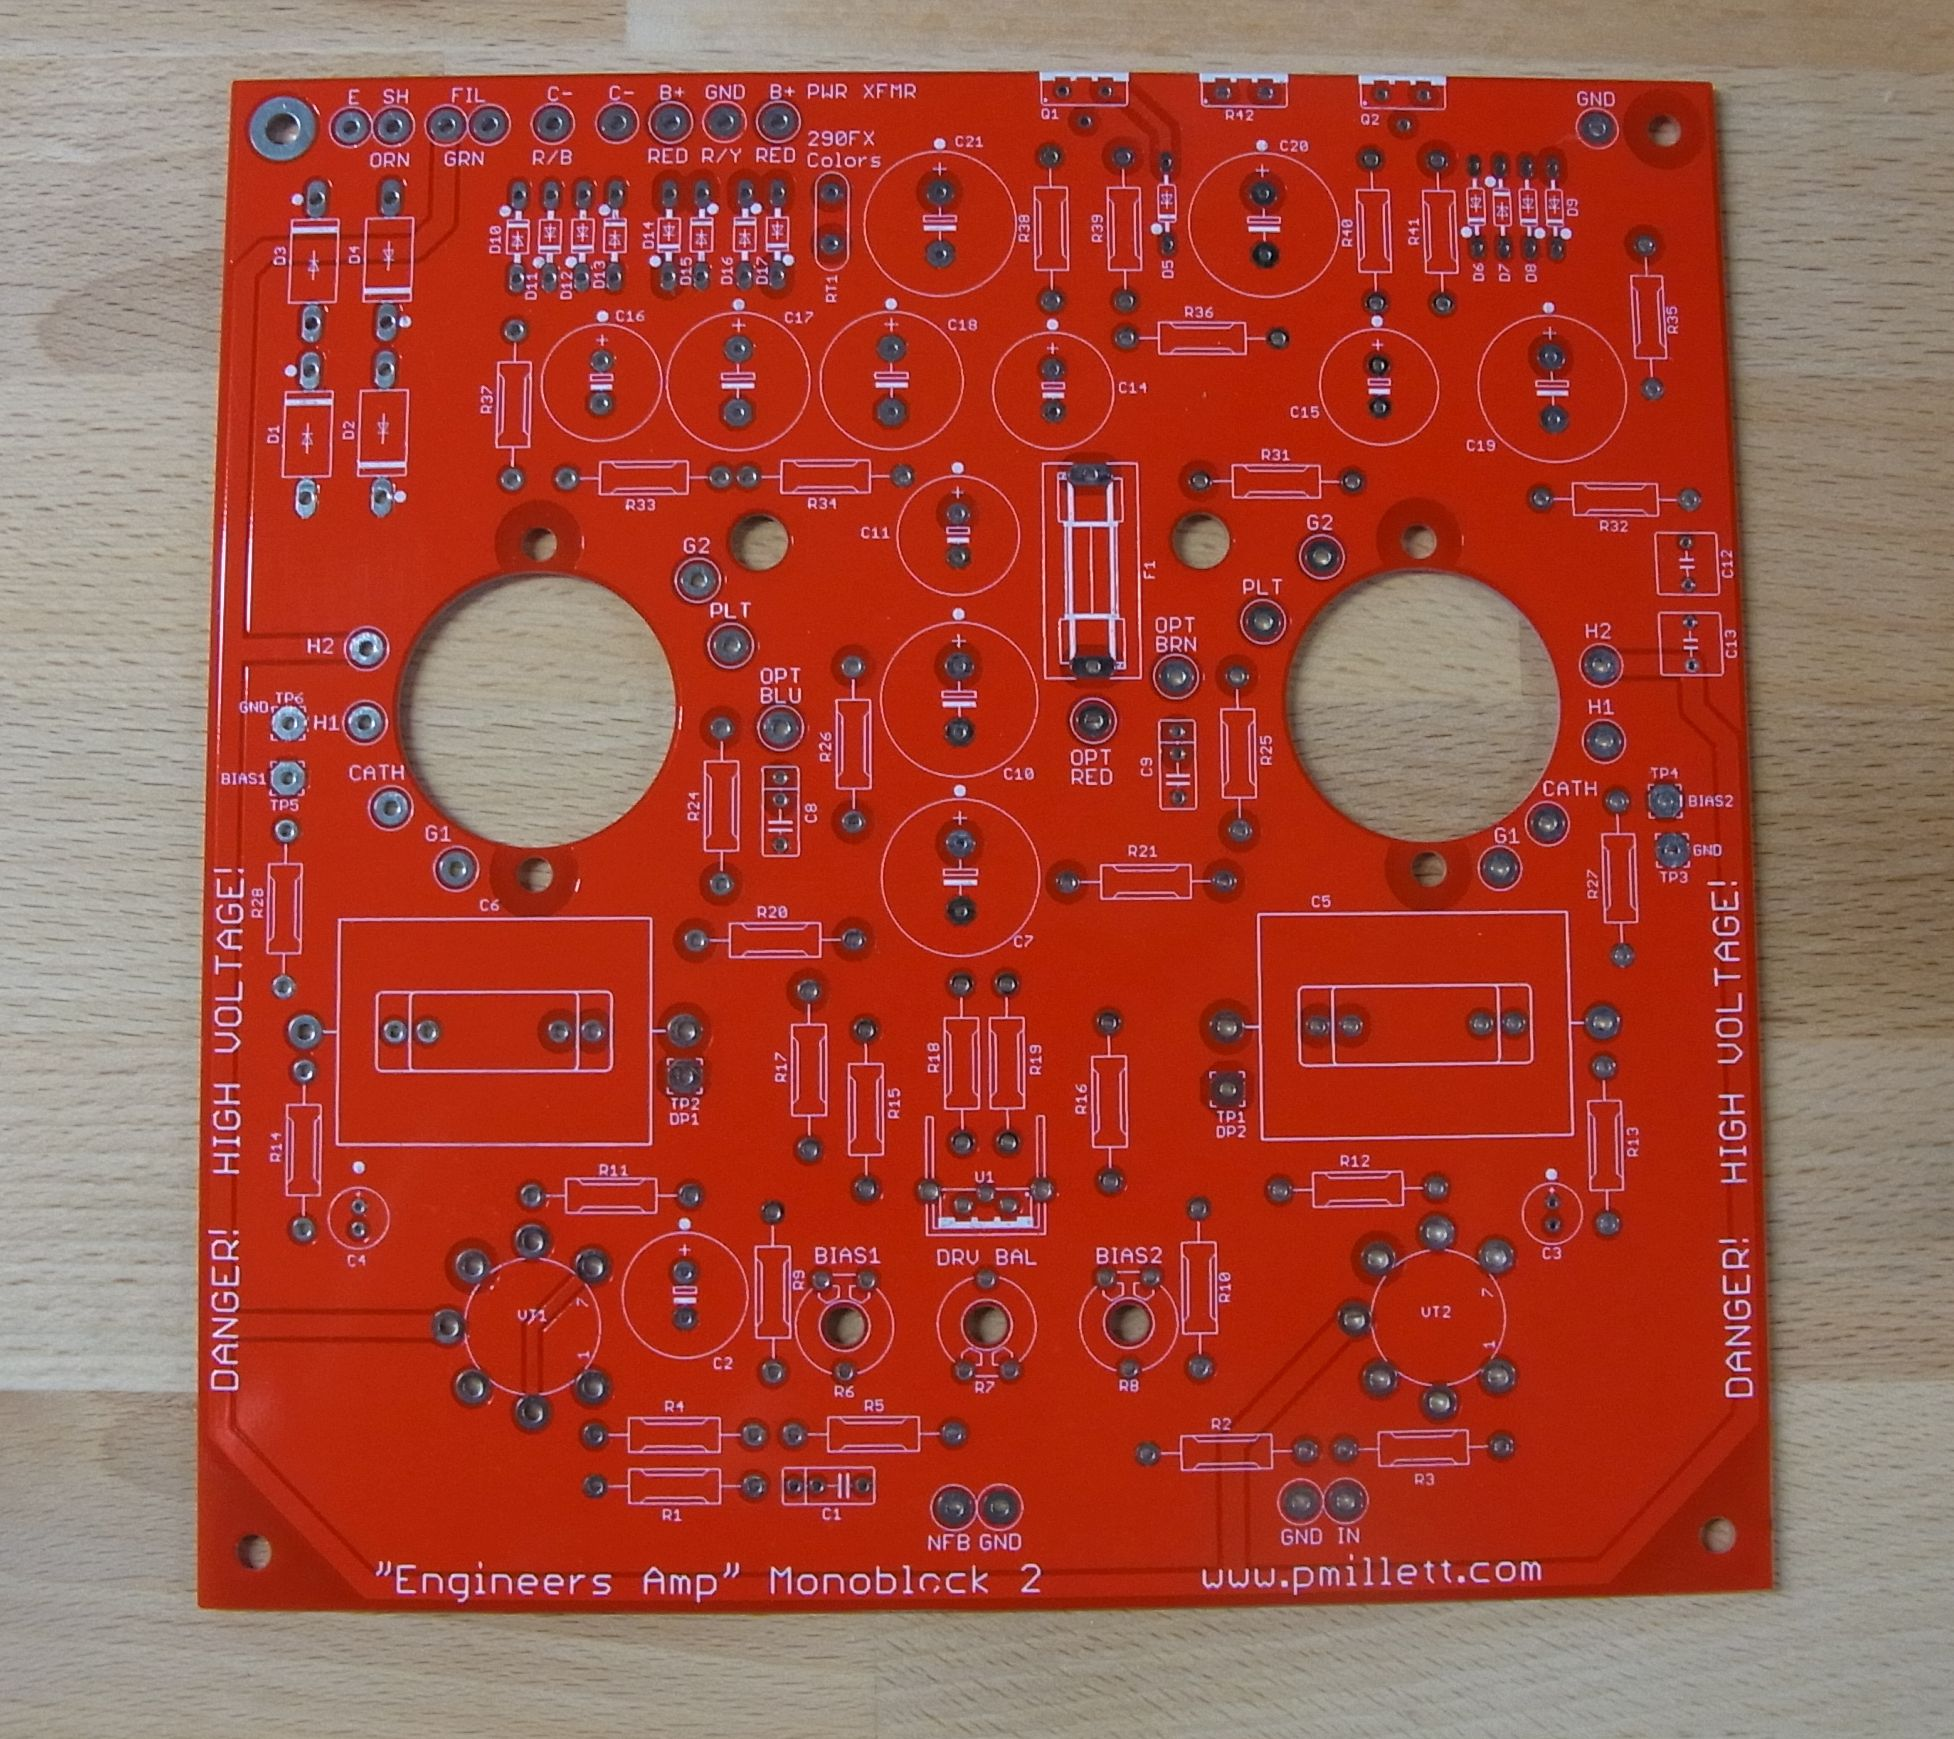 Engineers Amp 50w Monoblock 100w Mosfet Power Amplifier This Board Is Identical To The Original Except That Instead Of Having Compactron Sockets On Pcb There A Big Hole For Socket Be Mounted